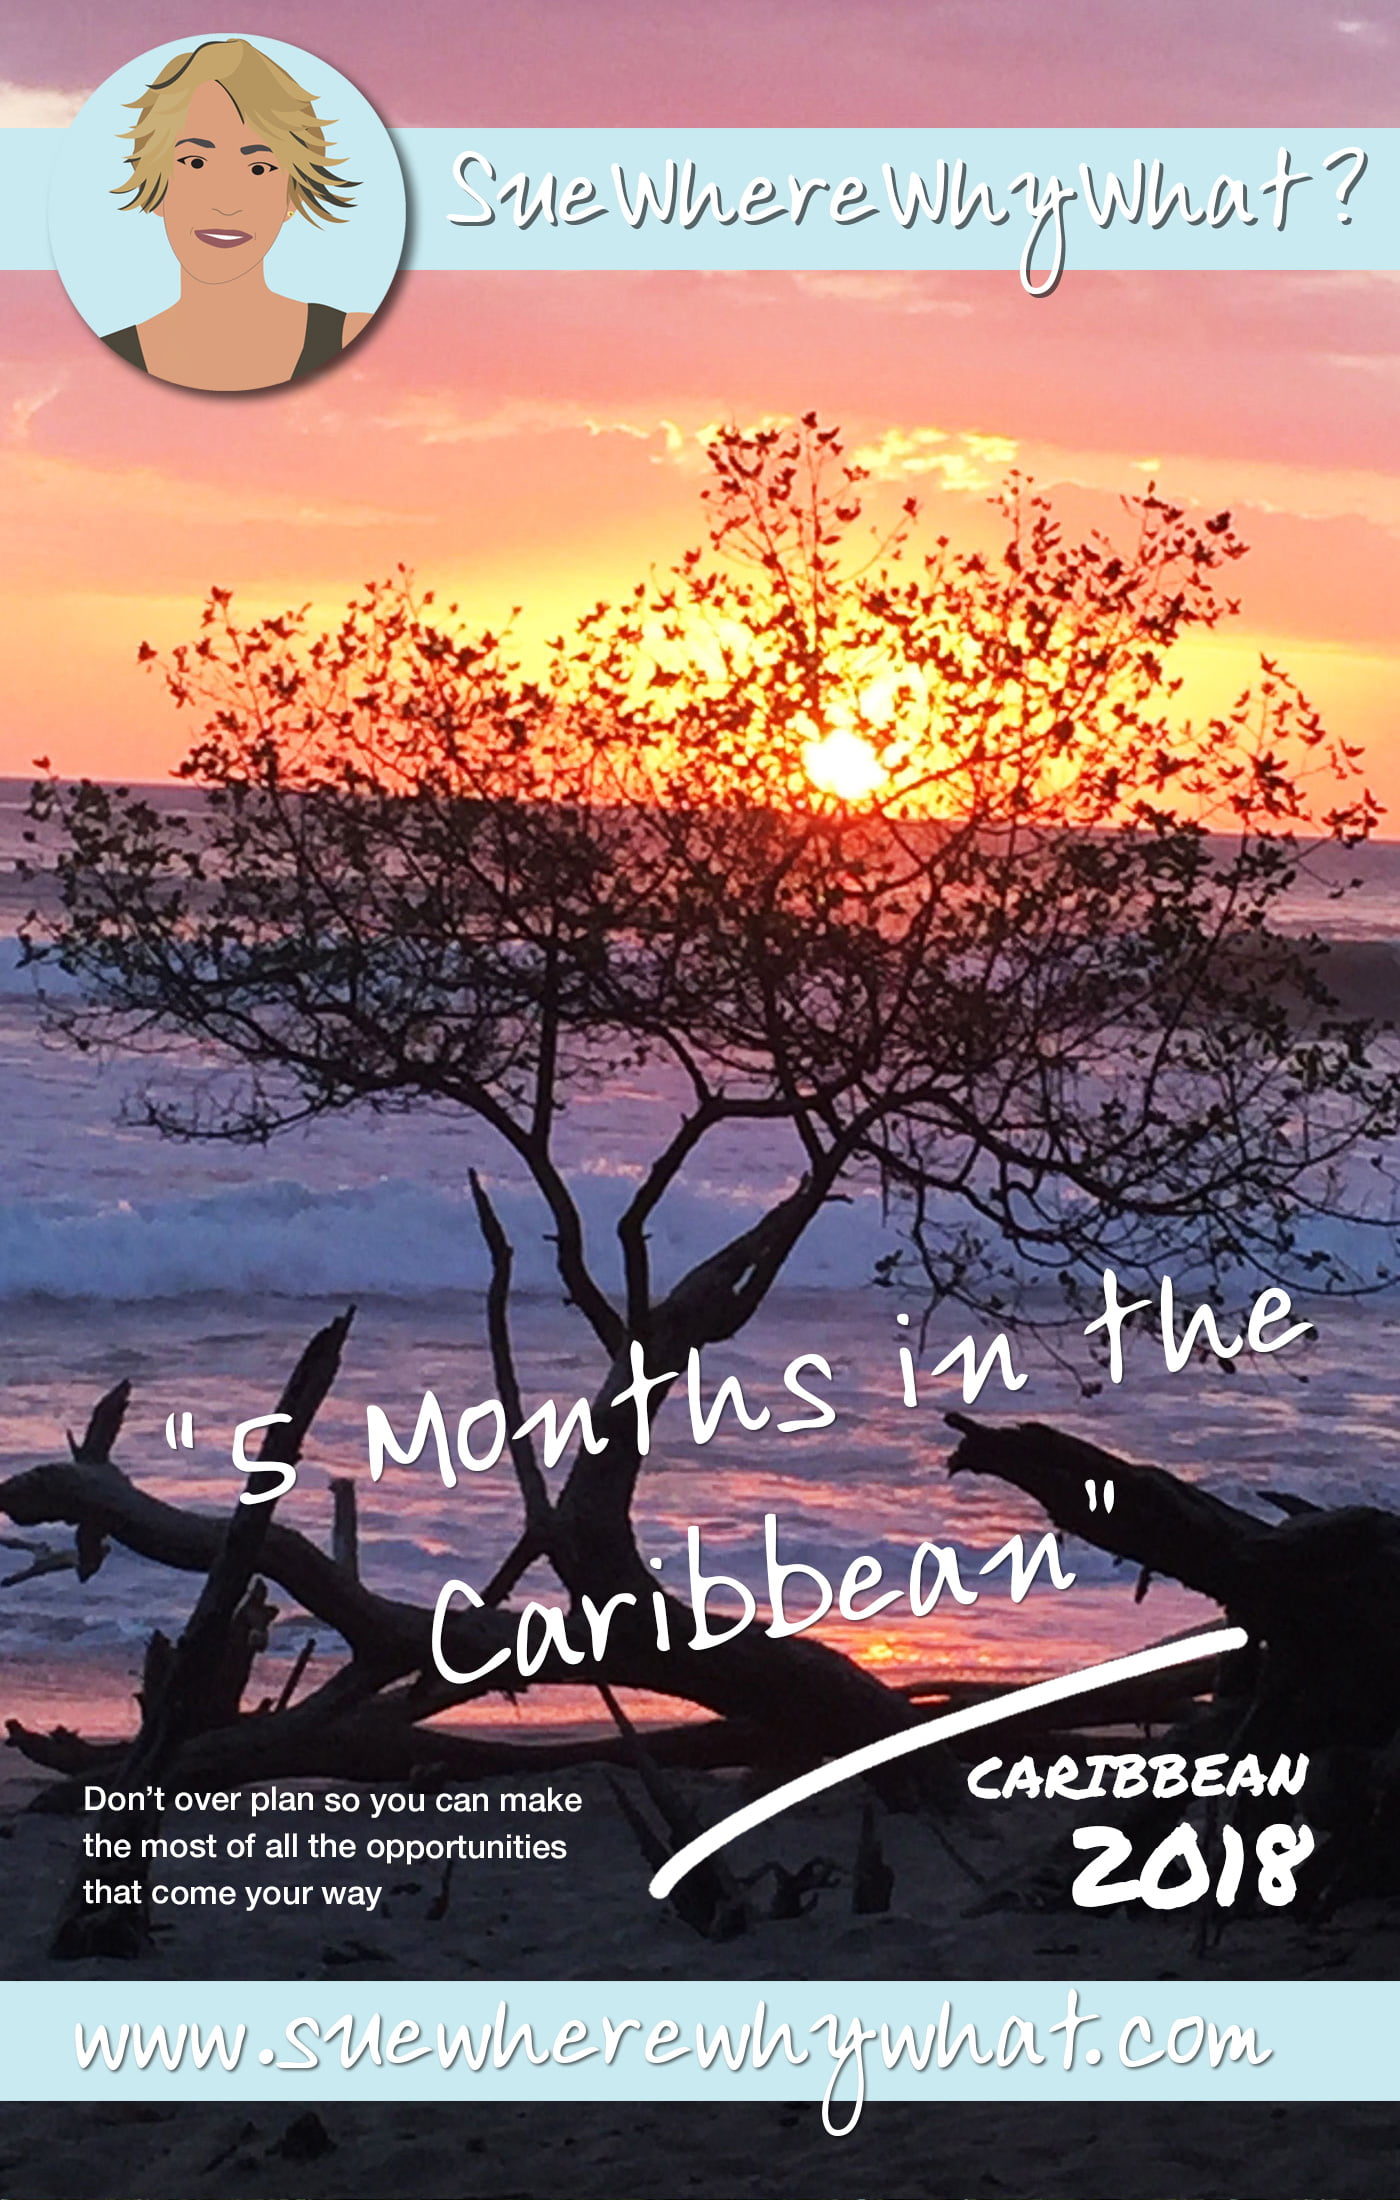 5 Month Self Tour of The Caribbean